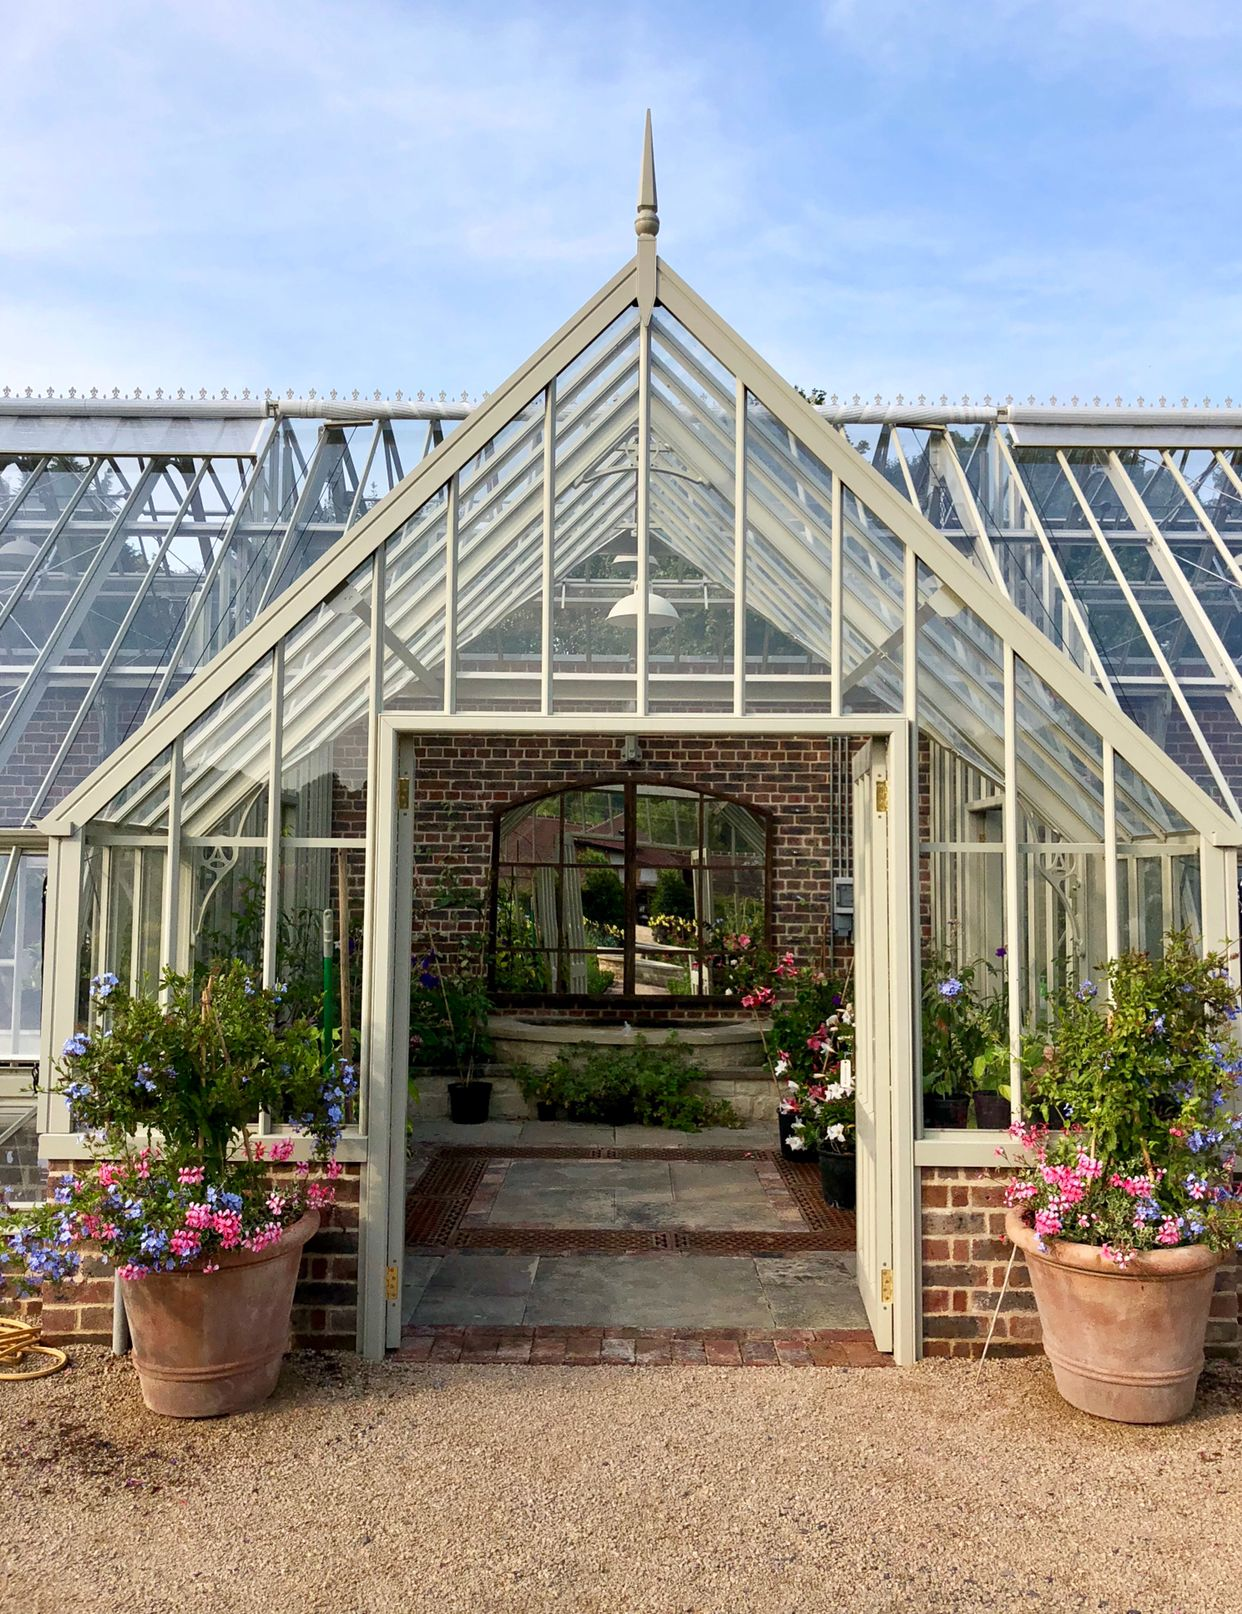 Greenhouse Detail With Mirror Centred To Reflect This Beautiful